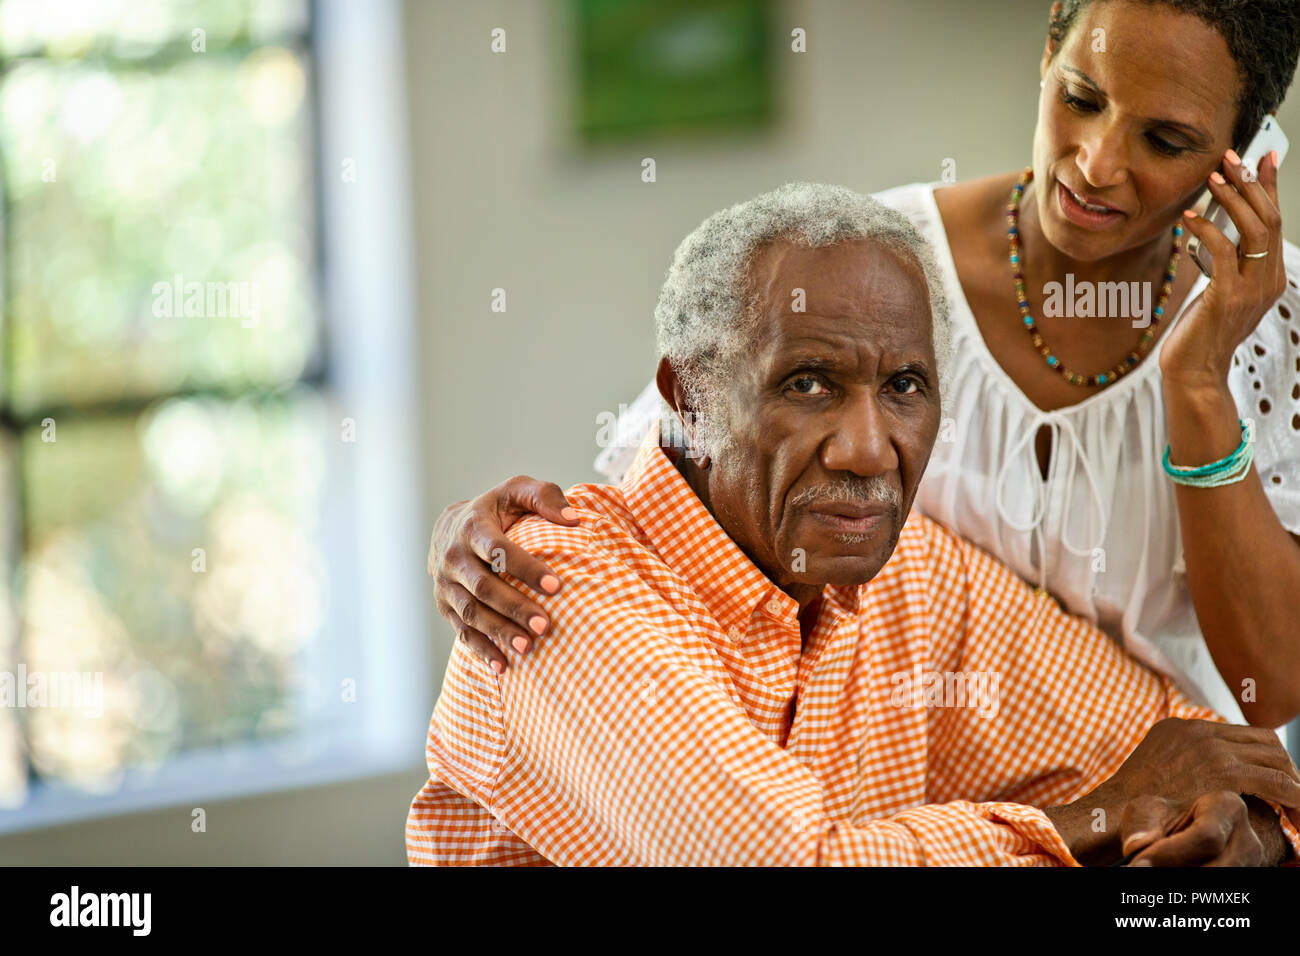 Happy senior man spending time with his middle aged son. - Stock Image